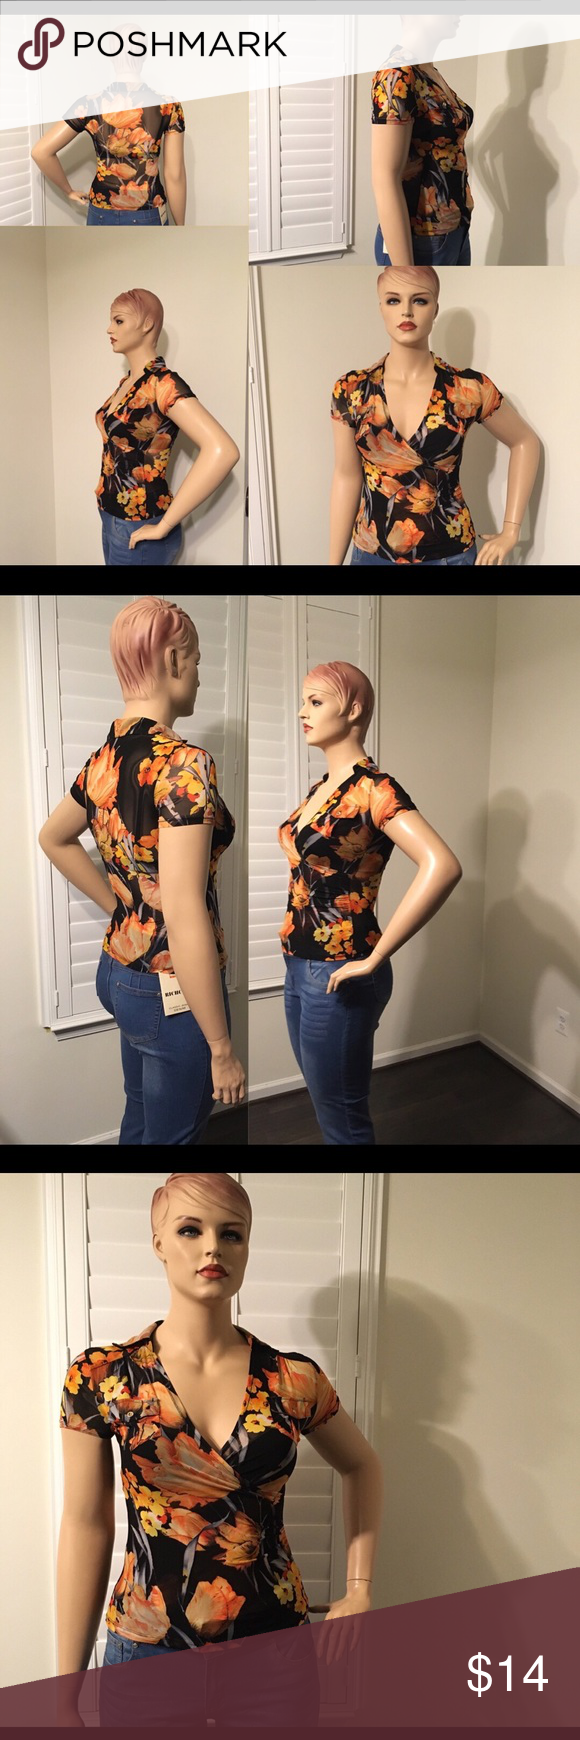 """6b25708397a ⬇️Orange Floral See Through Top Pullover 92% Rayon and 8% Spandex Made in  China Label Reflects Small. Cut Large Listing as size 14 Bust 40-42"""" Waist  ..."""